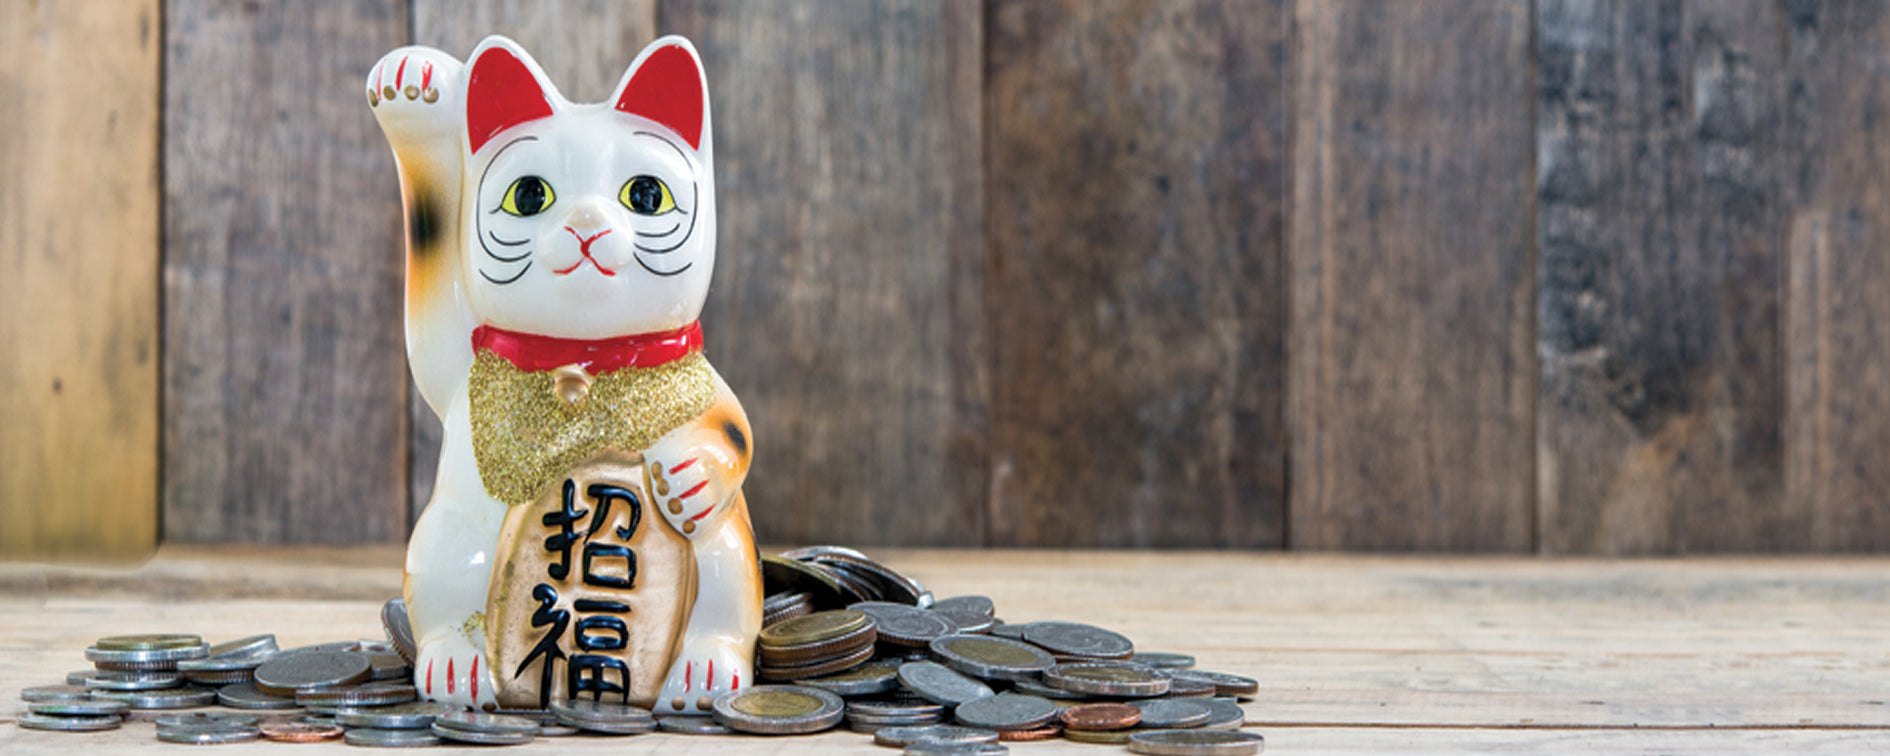 Maneki neko : The lucky cat